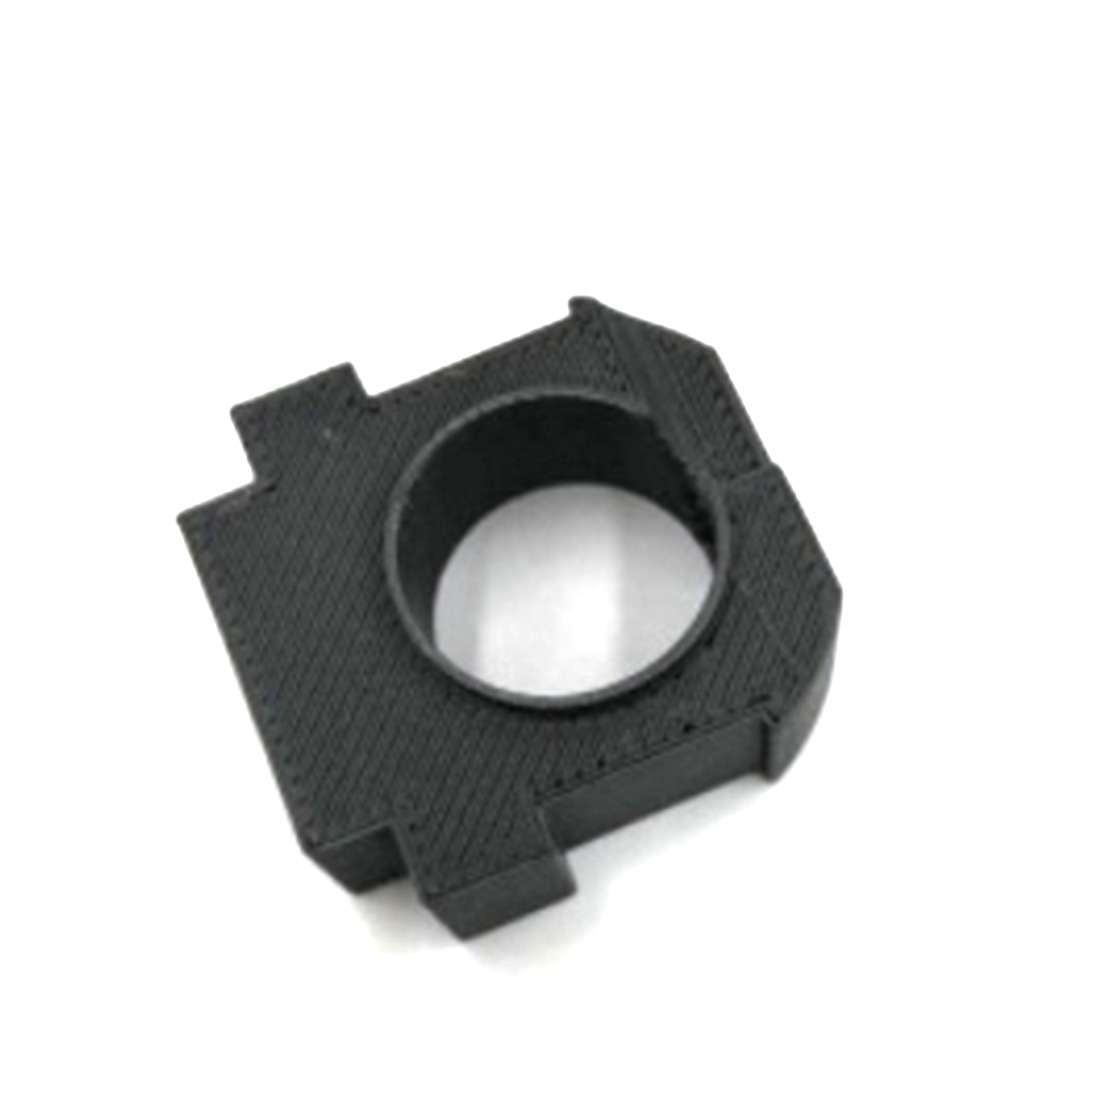 Black Hot Rowsfire 1 Pcs High Precision Water Gel Beads Parts 3d Printed Front Stabilizing Connector For U-mp45 Nylon Receiver Toy Guns